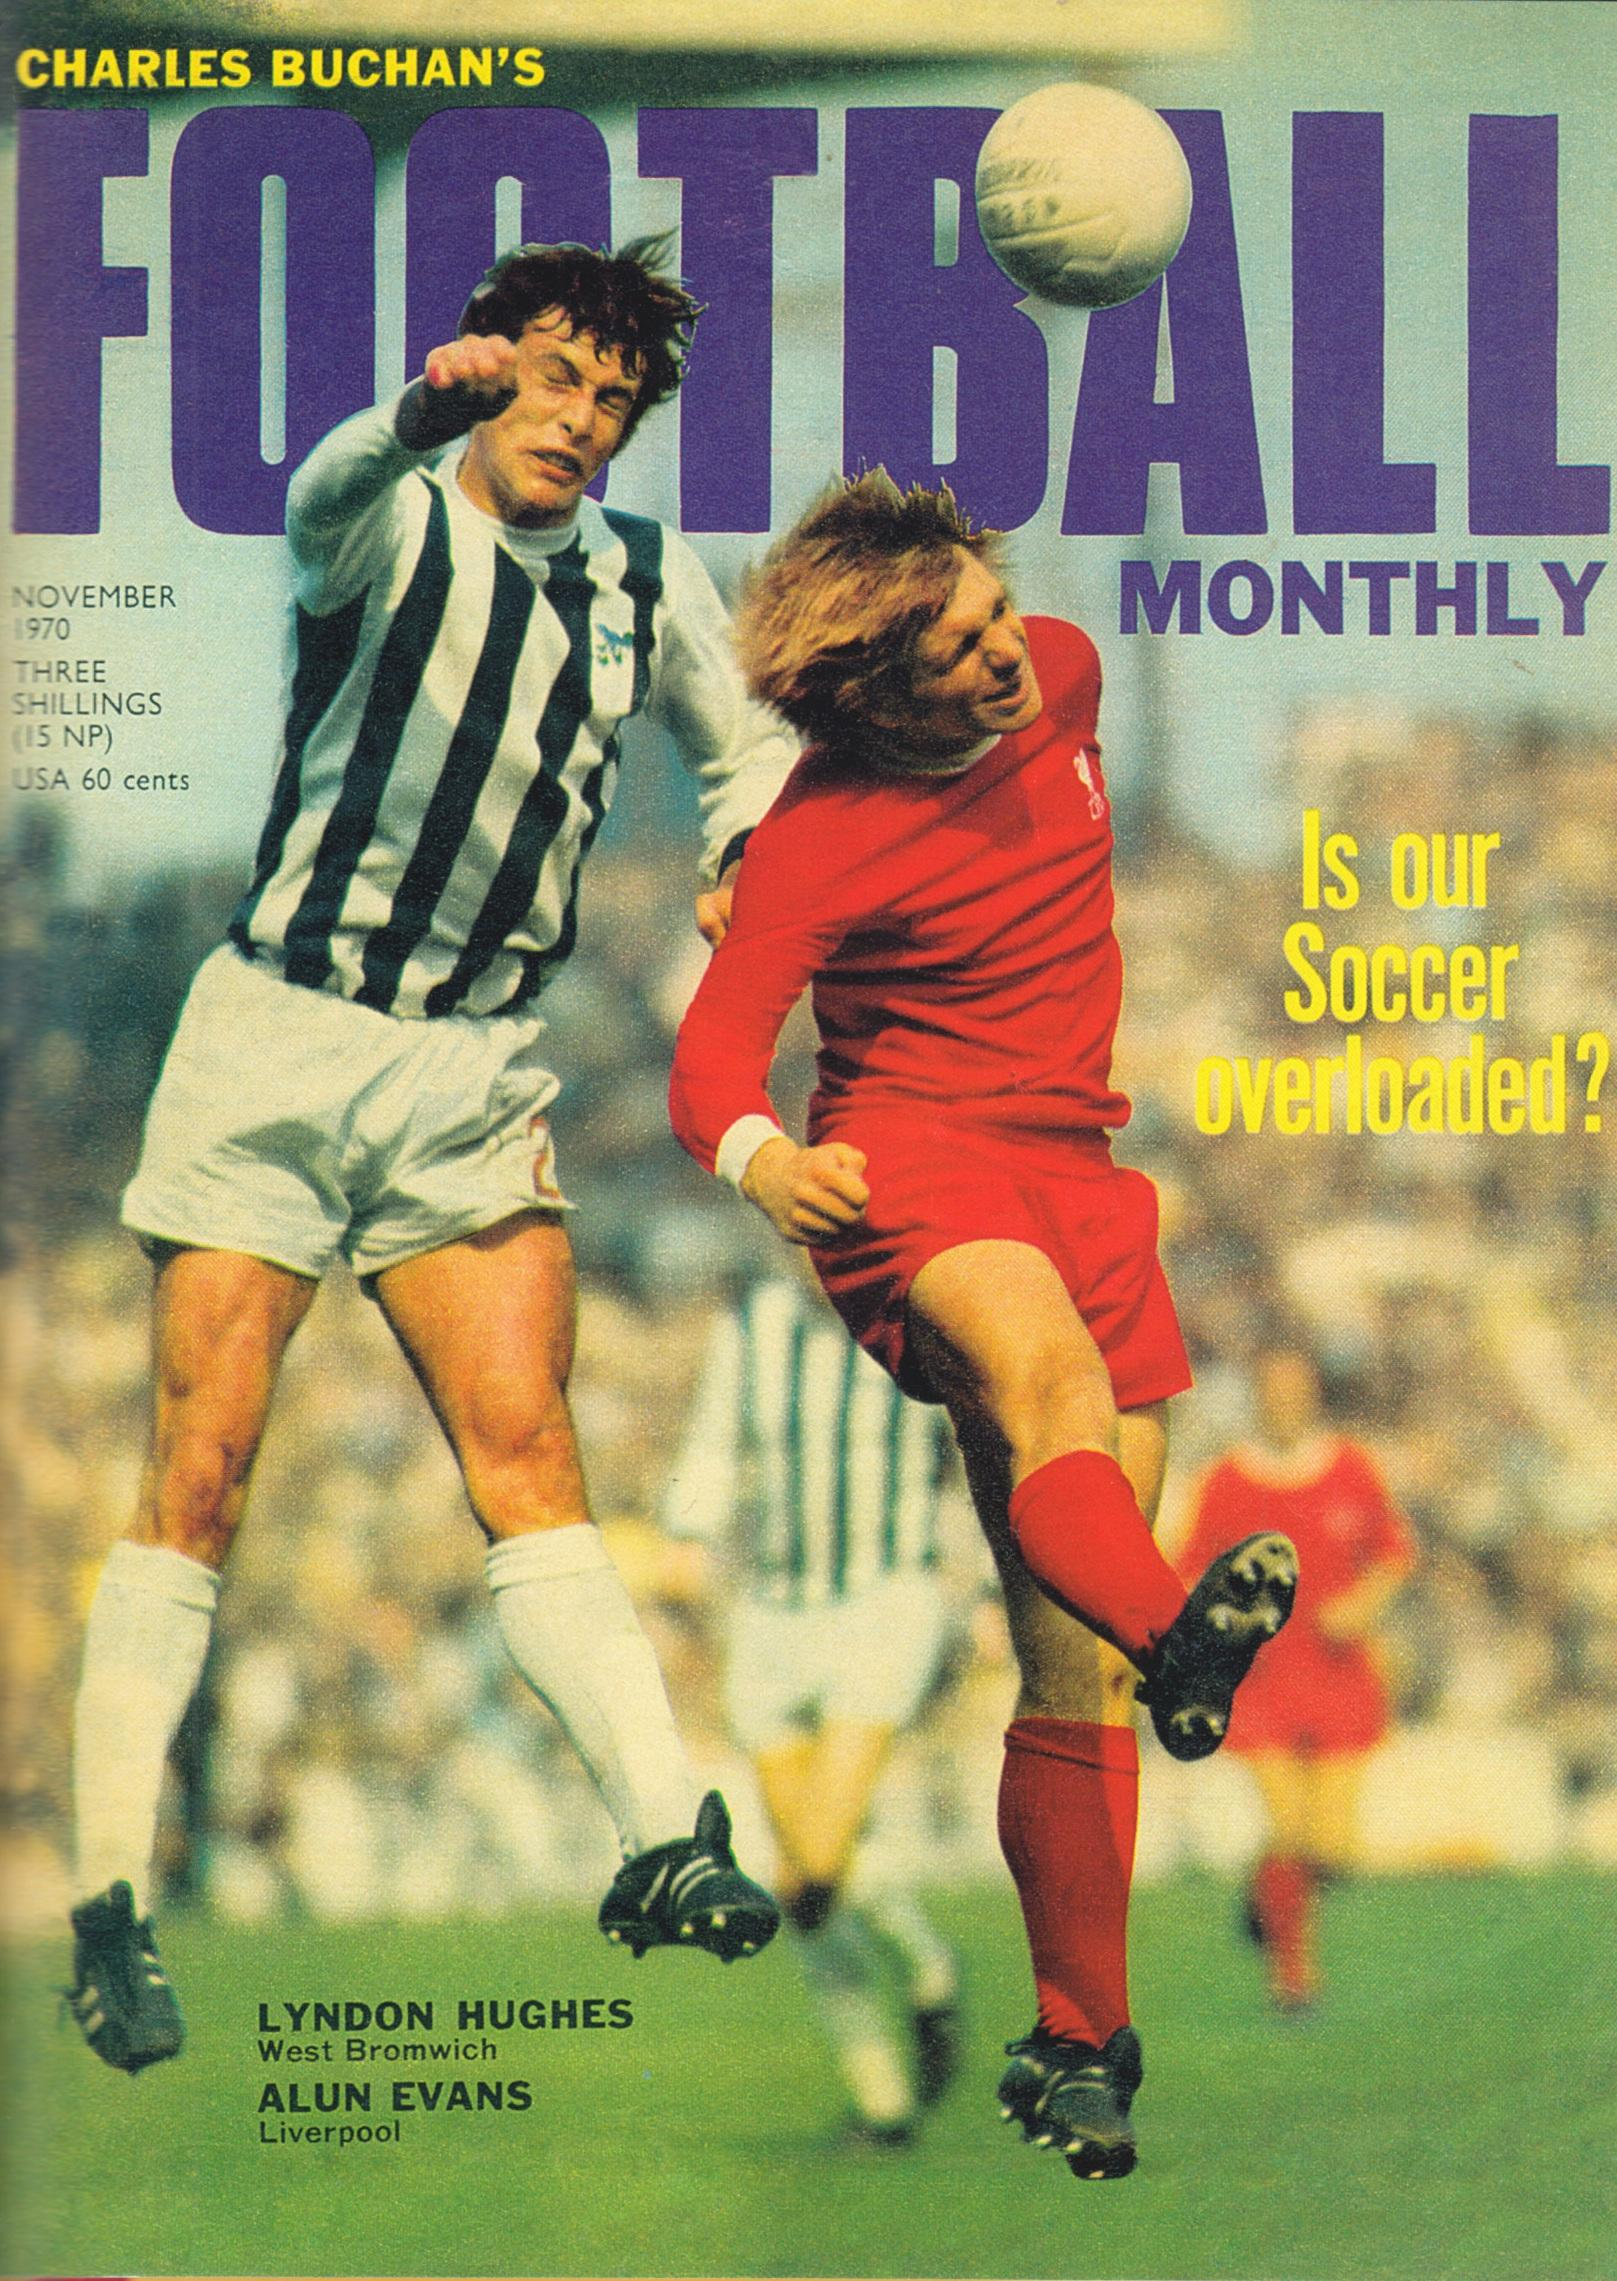 Alun Evans on the cover of Football Monthly in November 1970